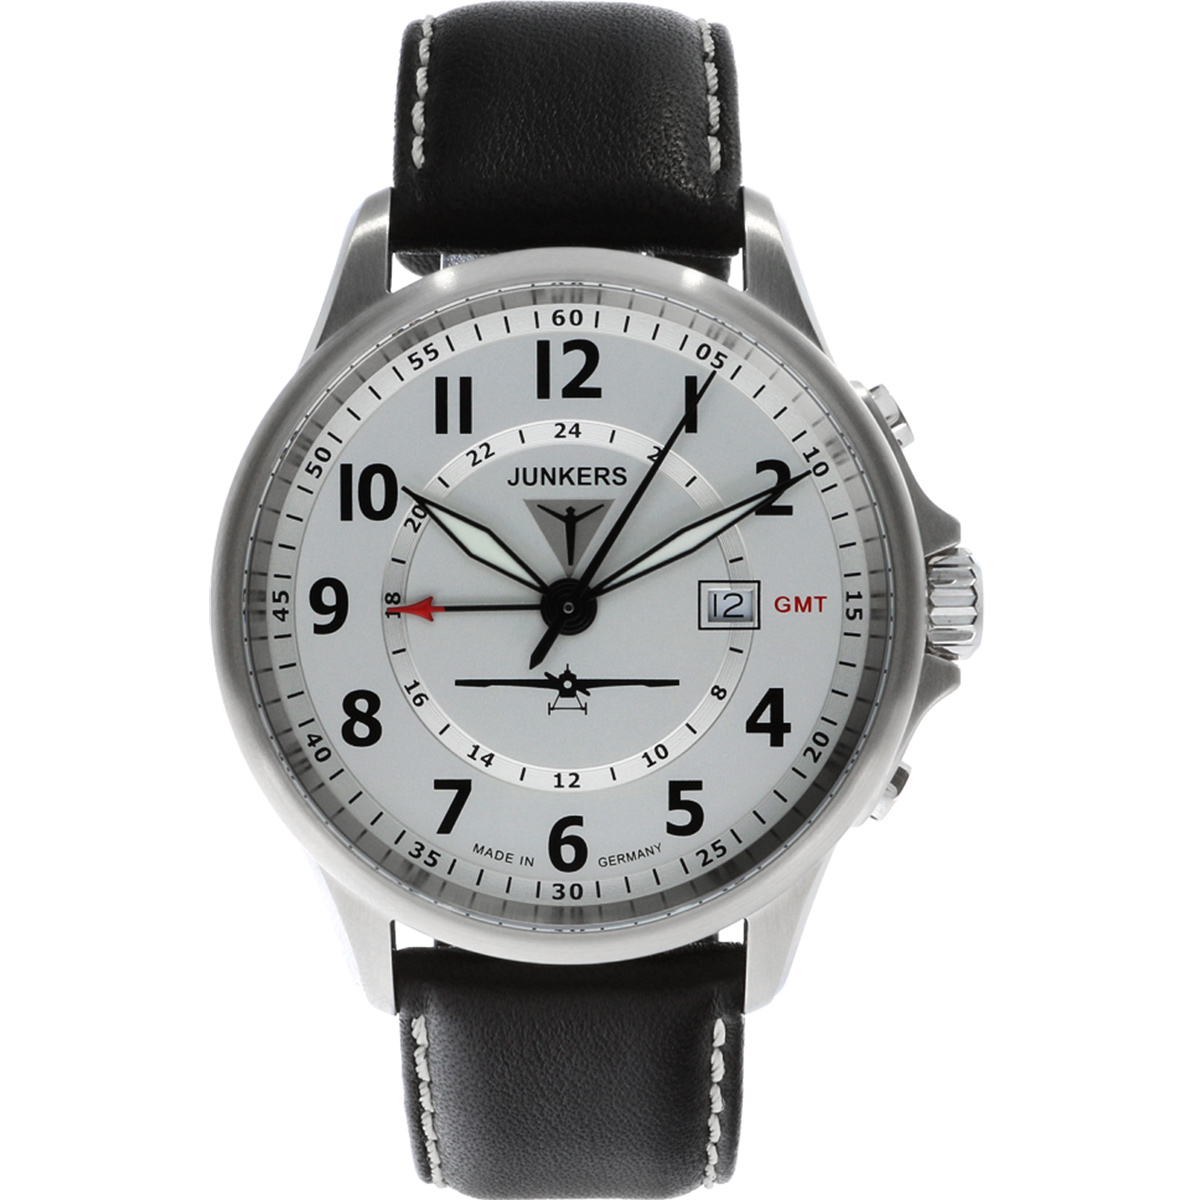 Junkers watch limited edition